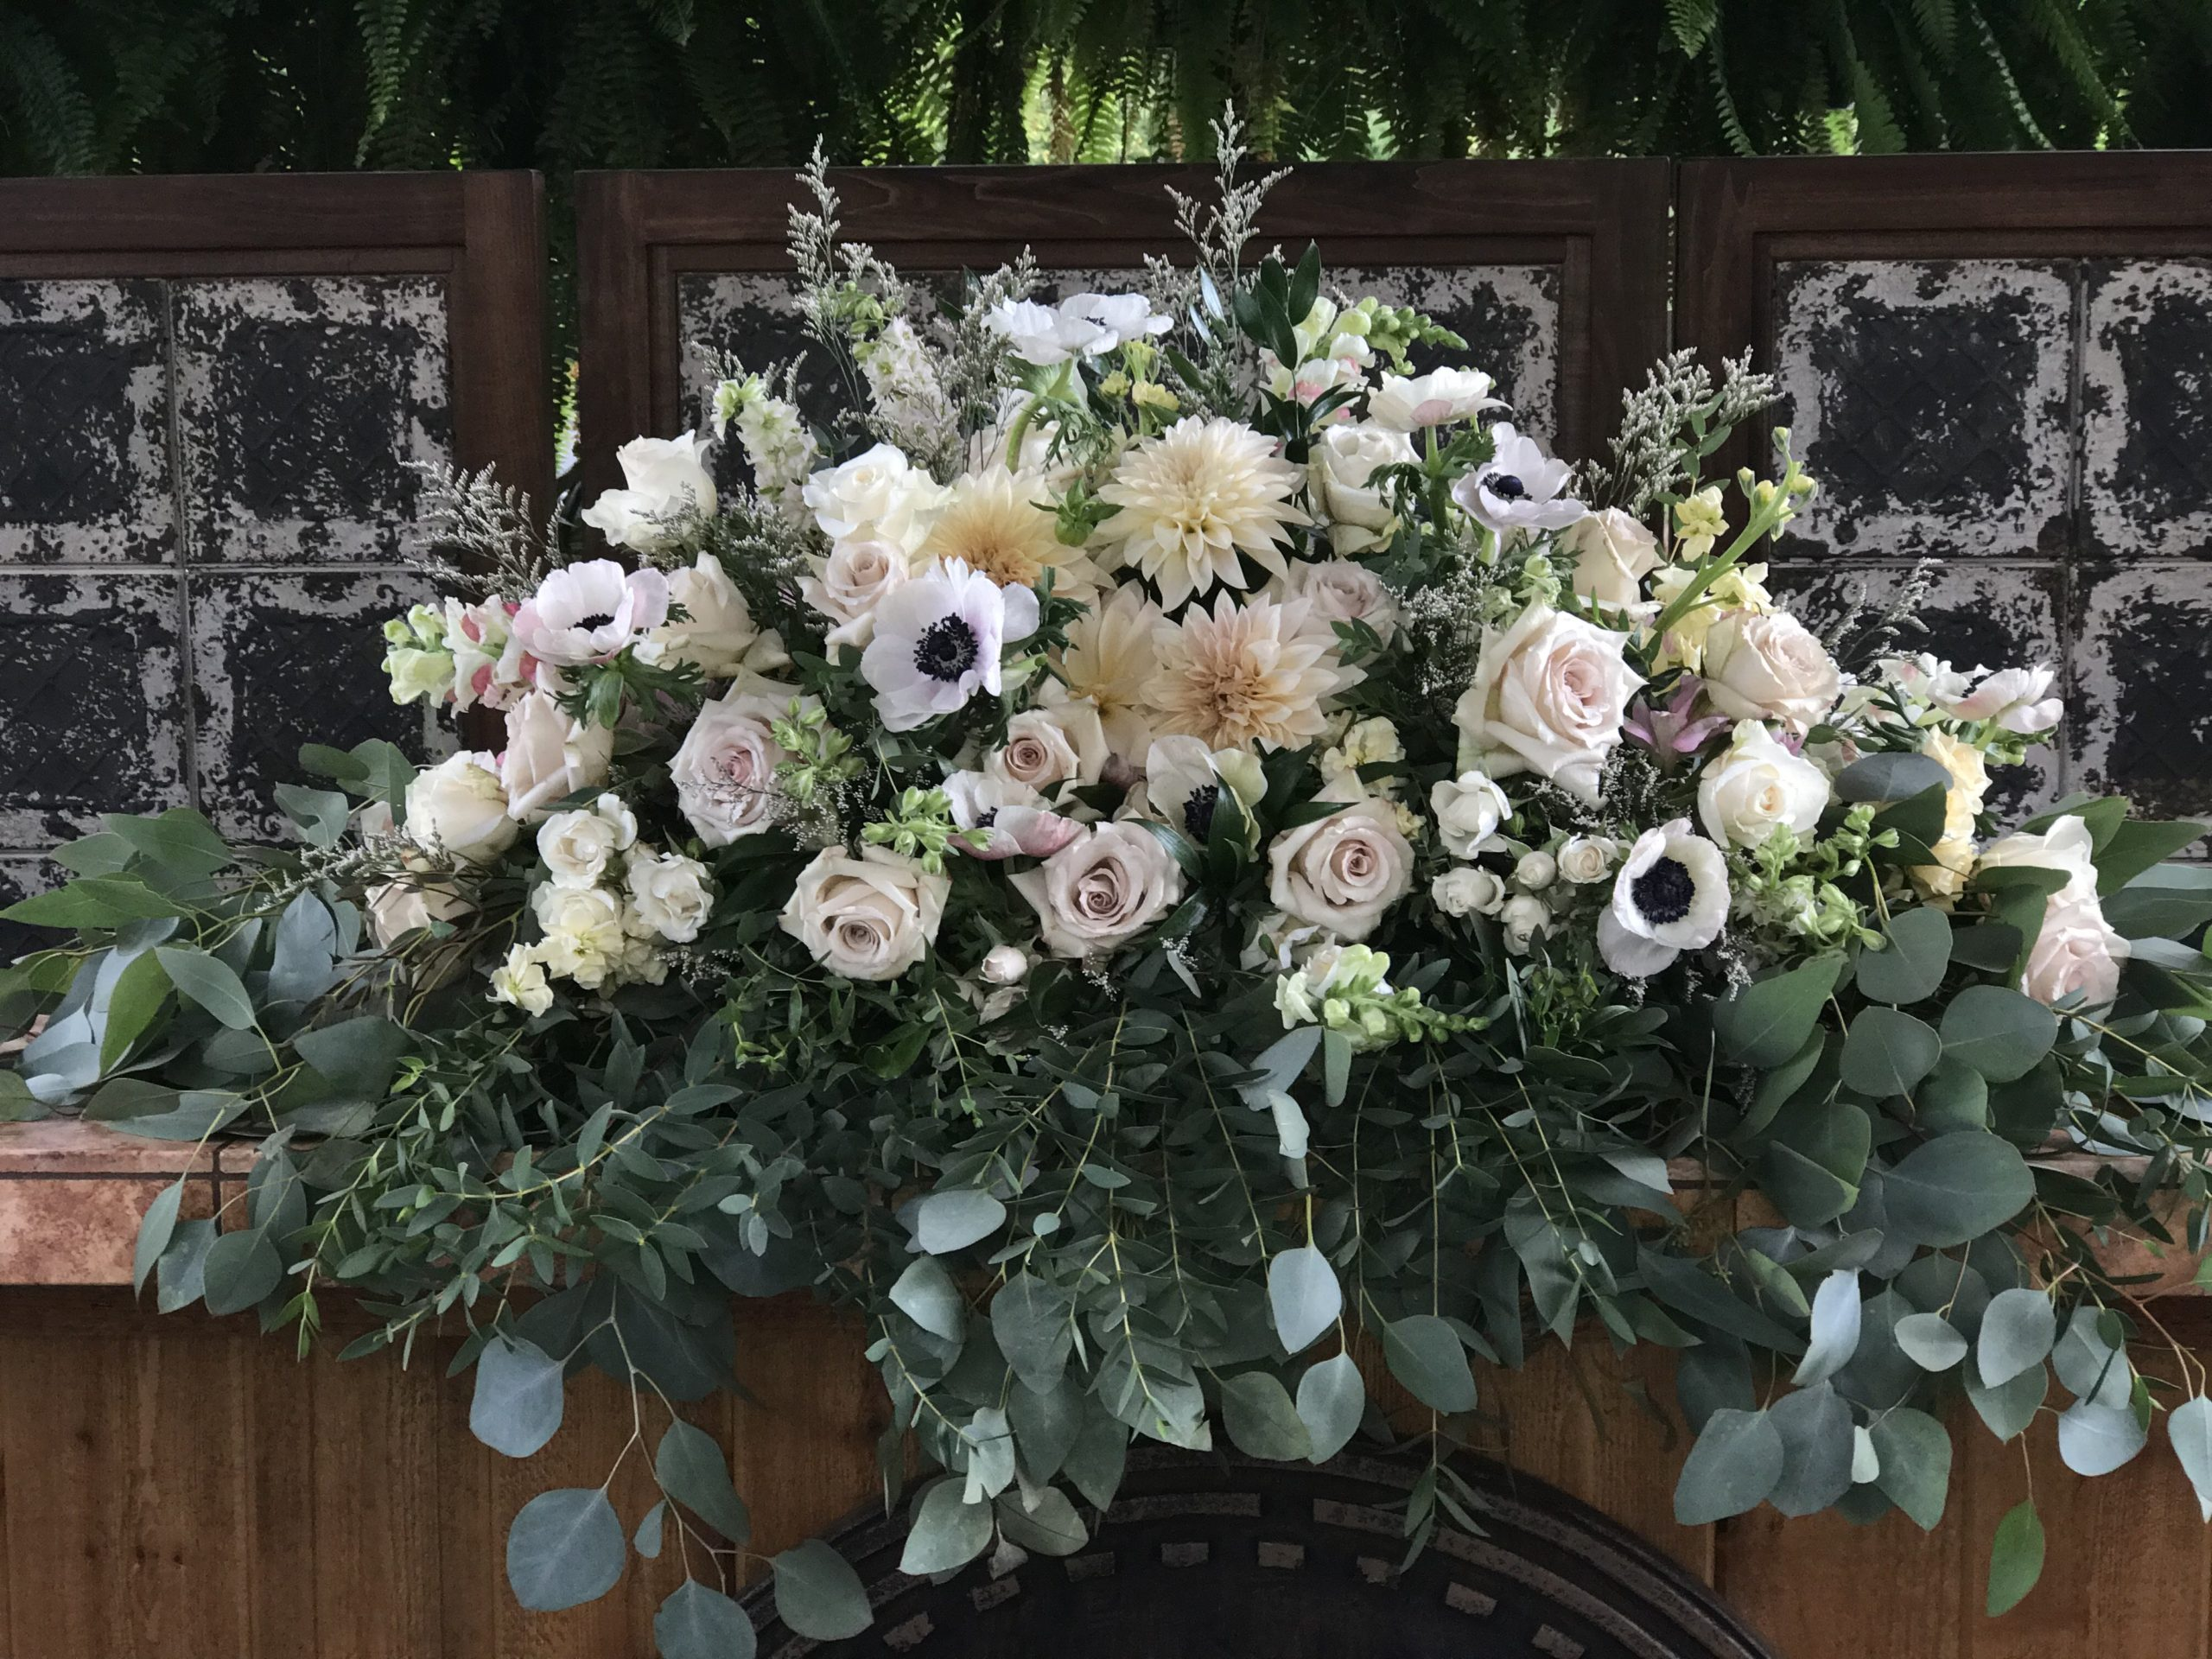 Wedding at Gervasi Vineyard. Cafe au Lait dahlis, anemones, quicksand roses in flowers by Garden by the Gate Floral Design